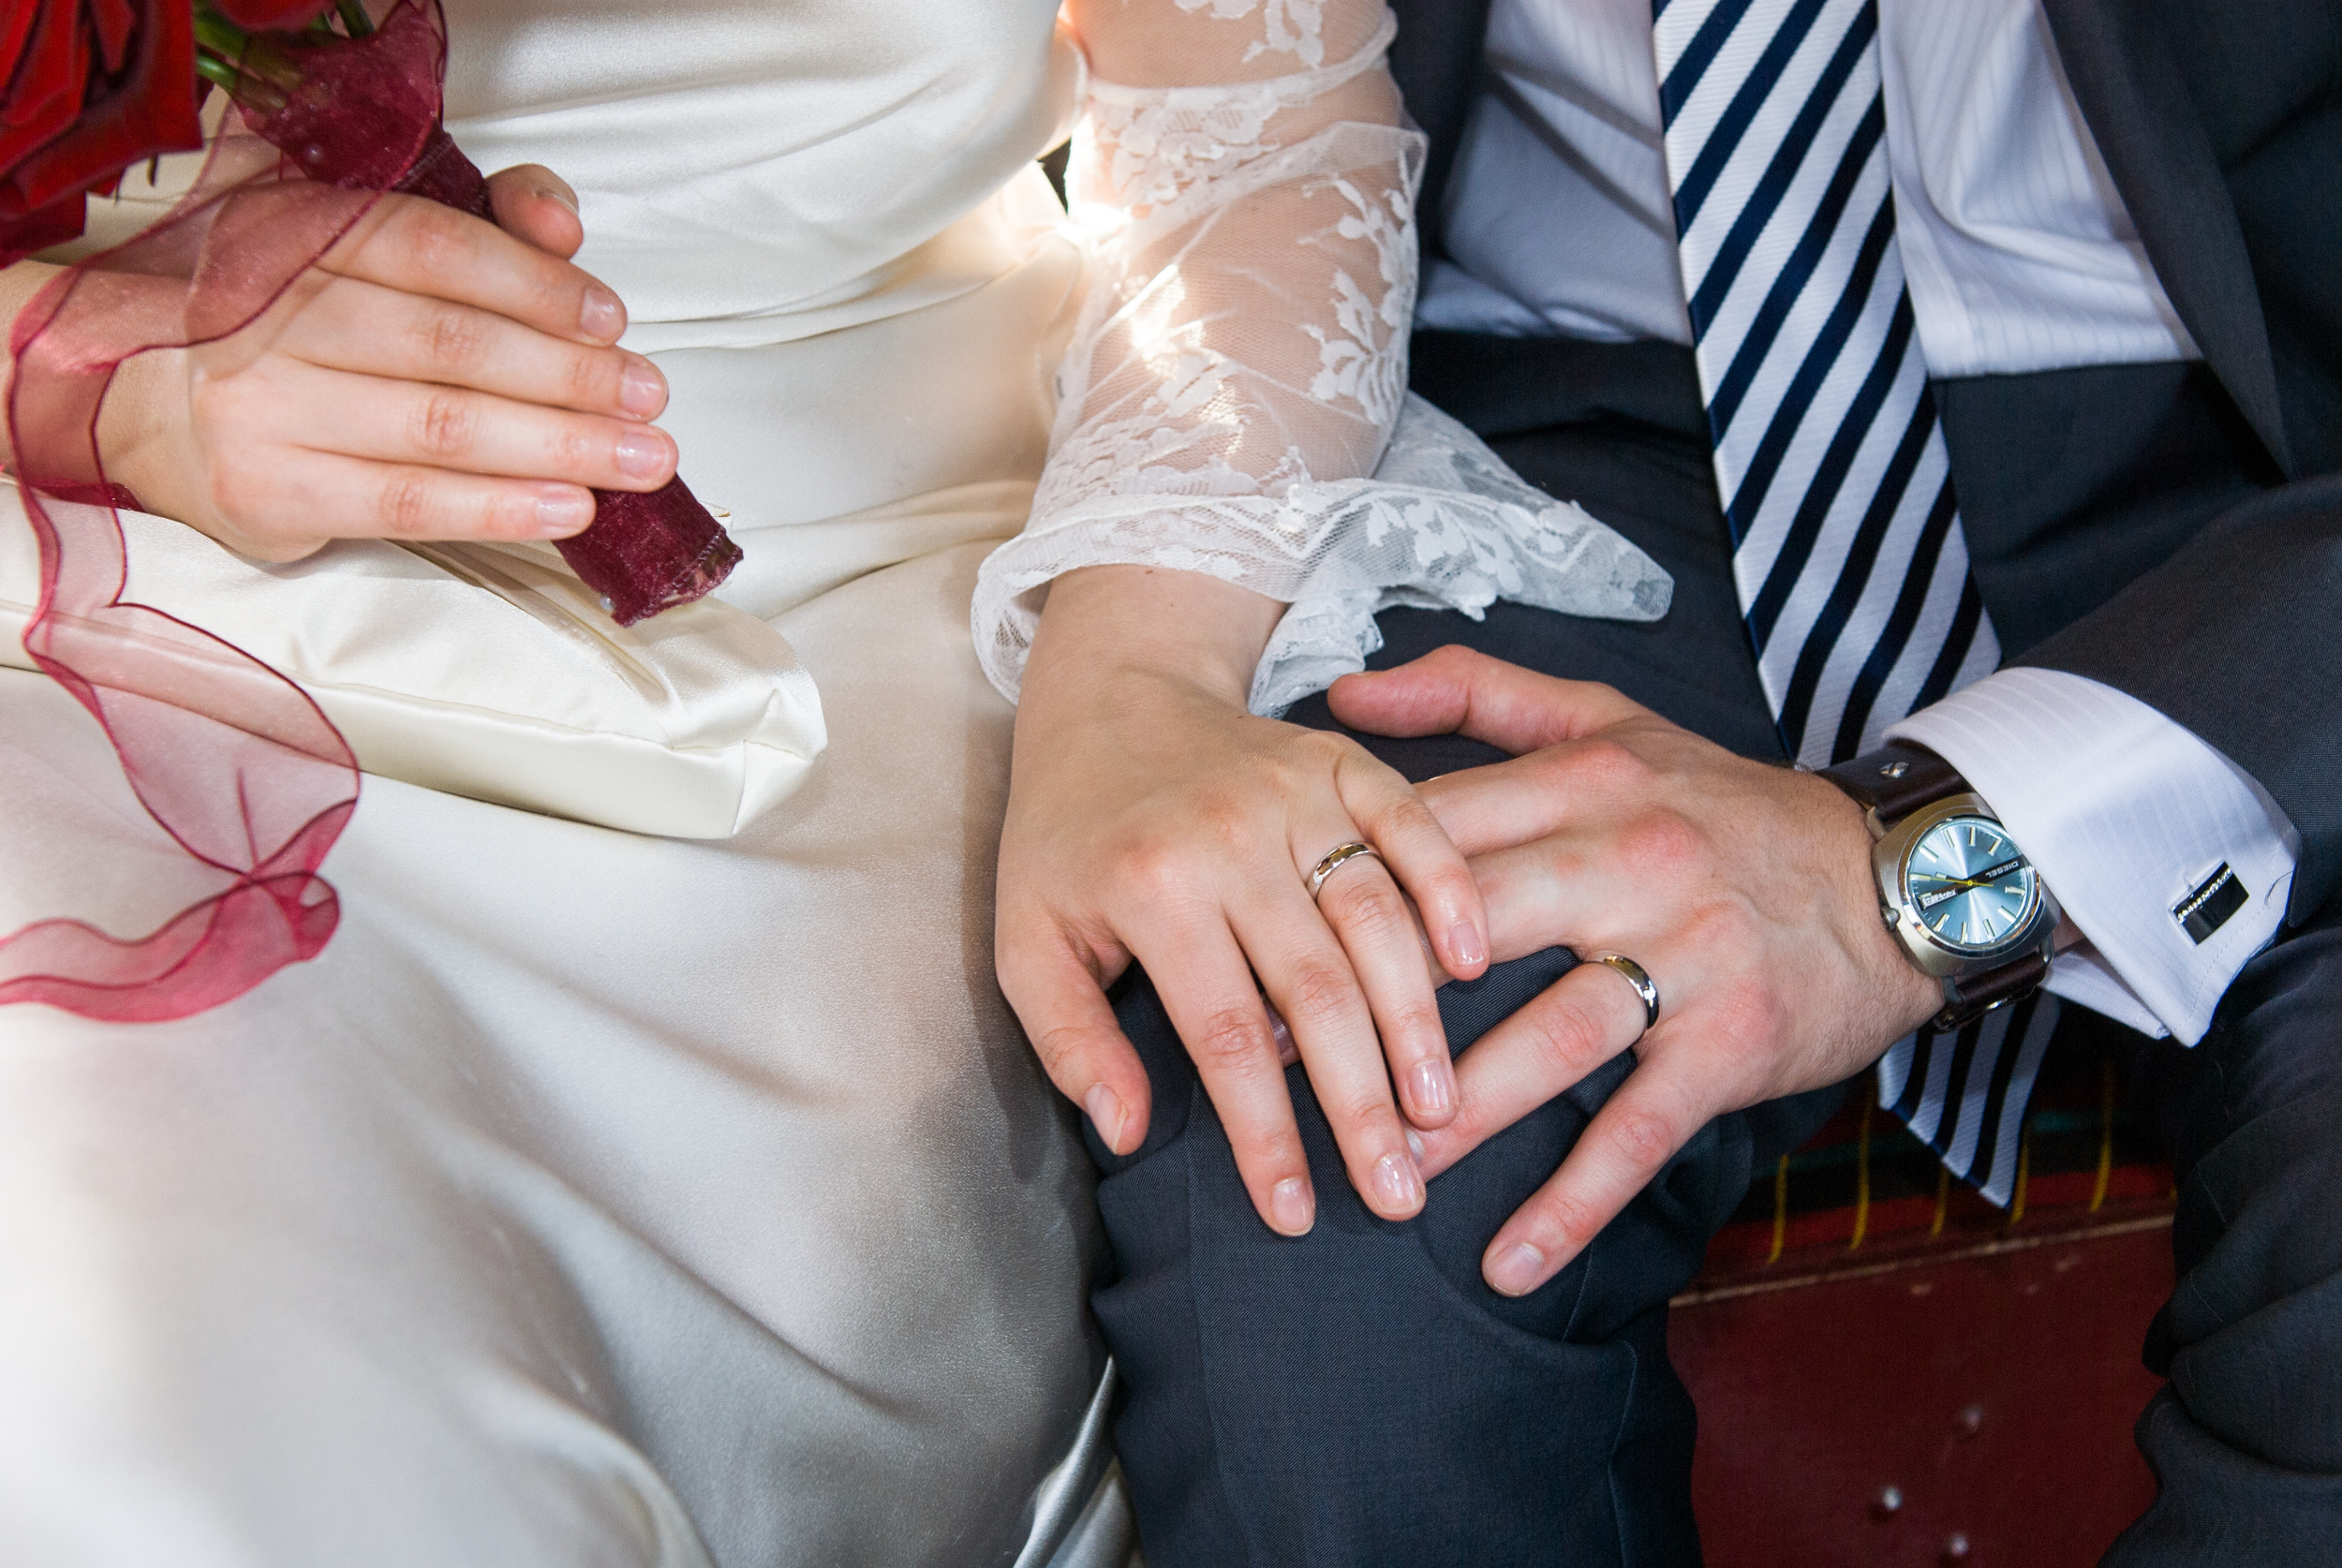 GEORGINA-COOK-WEDDING-PHOTOGRAPHY-NEWLY-MARRIED-COUPLE-RINGS.jpg